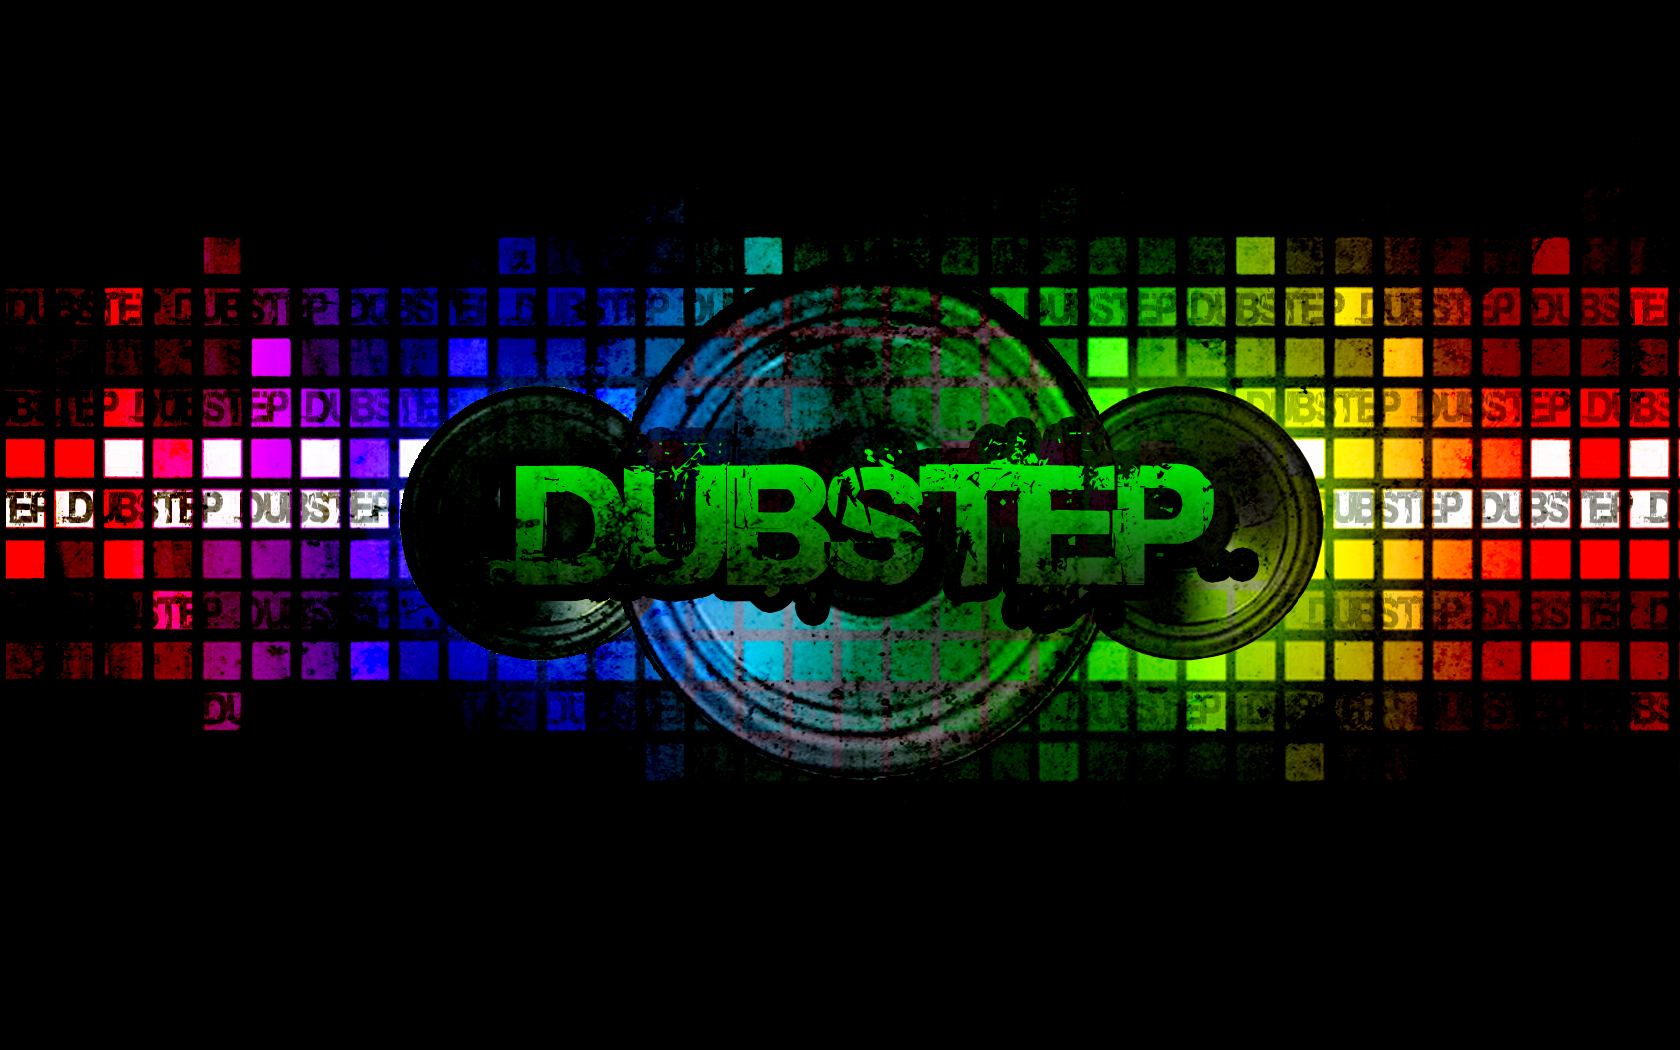 abstract dubstep wallpaper 1080p - photo #47